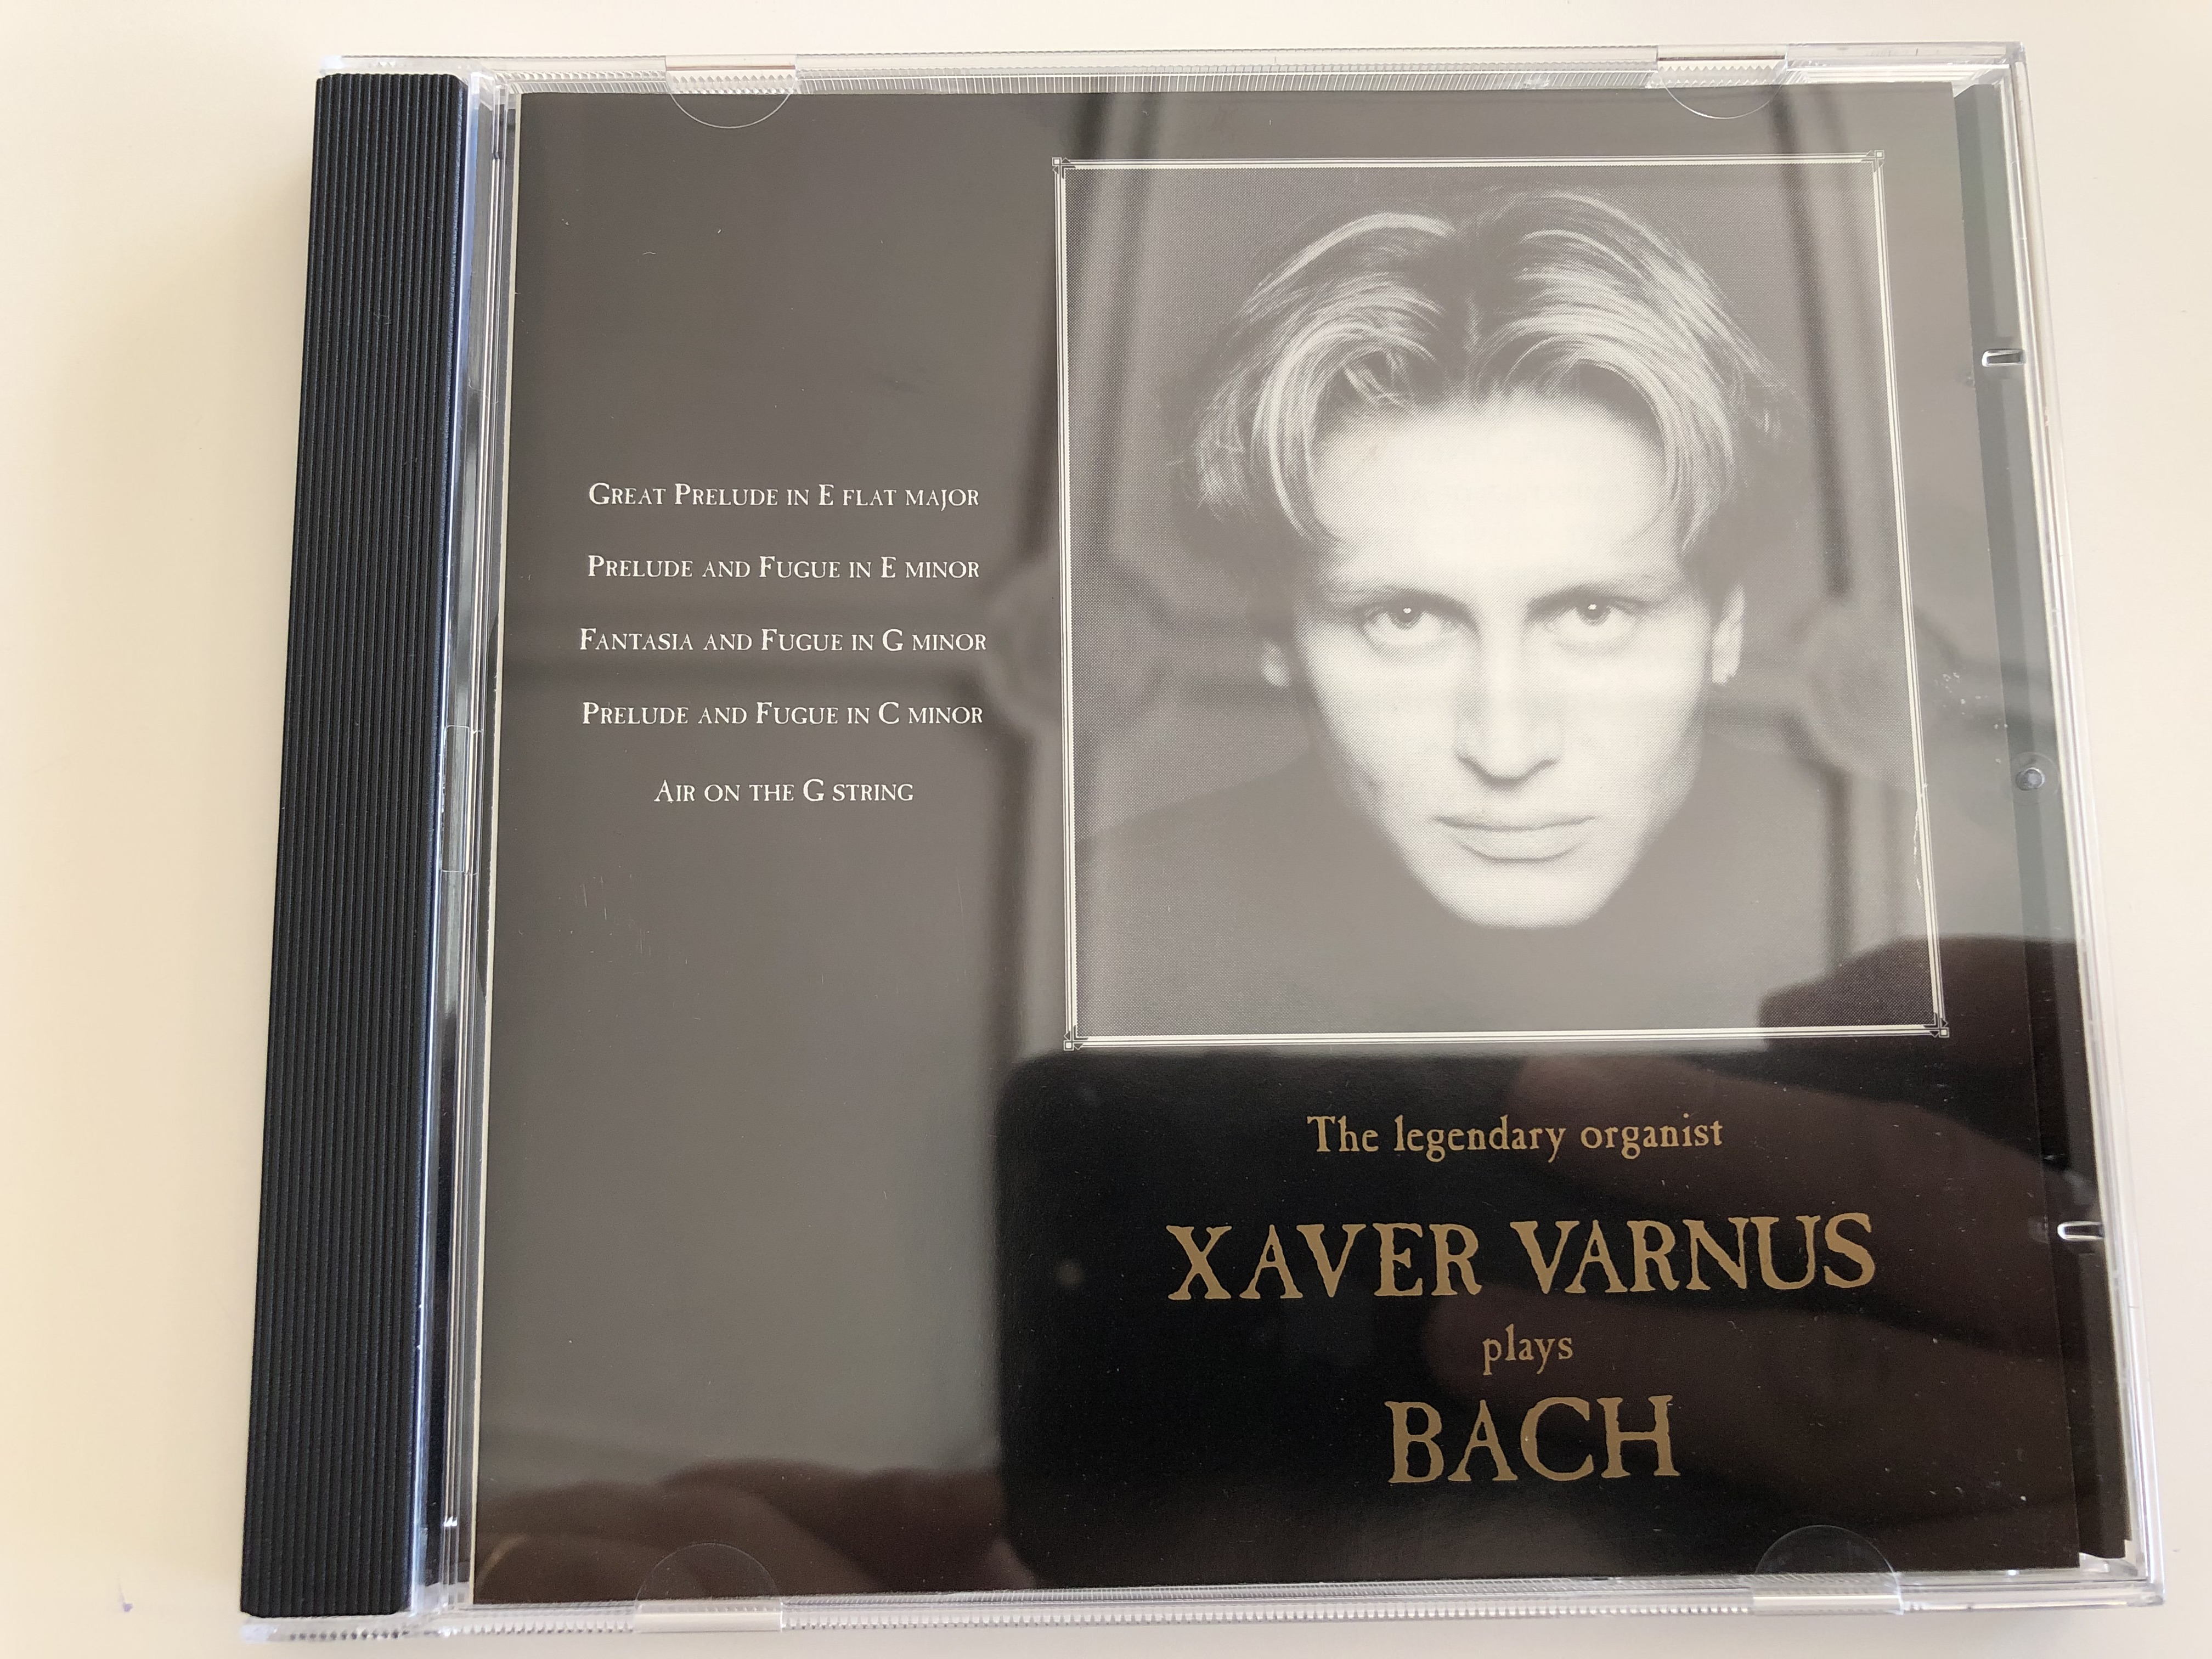 xaver-varnus-the-legendary-organist-plays-bach-audio-cd-1994-great-prelude-in-e-flat-major-prelude-fugue-in-e-minor-fantasia-fugue-in-g-minor-air-on-the-g-string-recorded-on-the-kecskem-t-conservatory-organ-in-hungar-1-.jpg